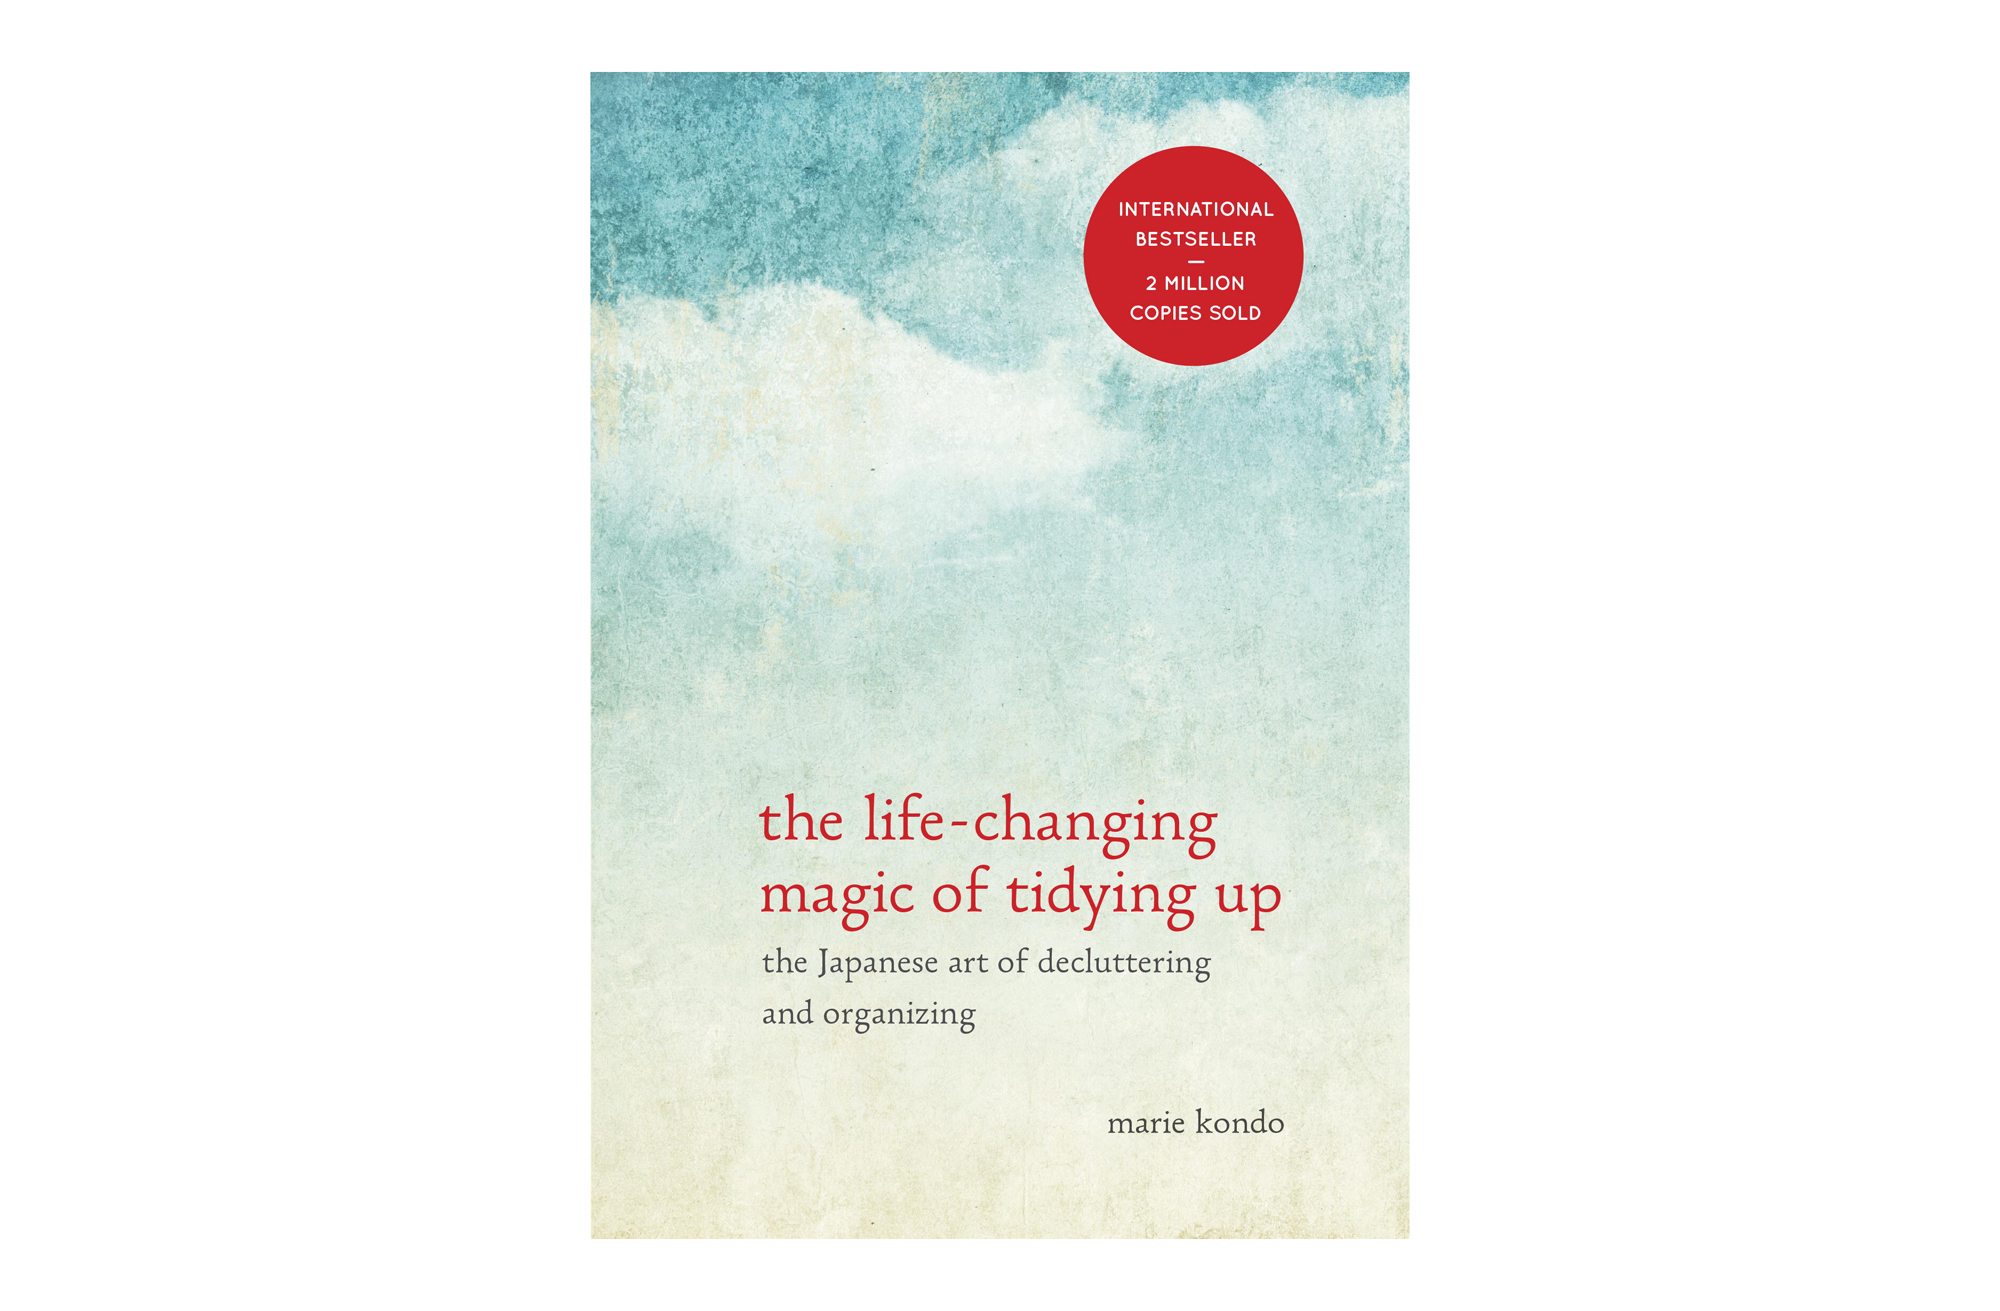 The Life Changing Magic of Tidying Up, by Marie Kondo